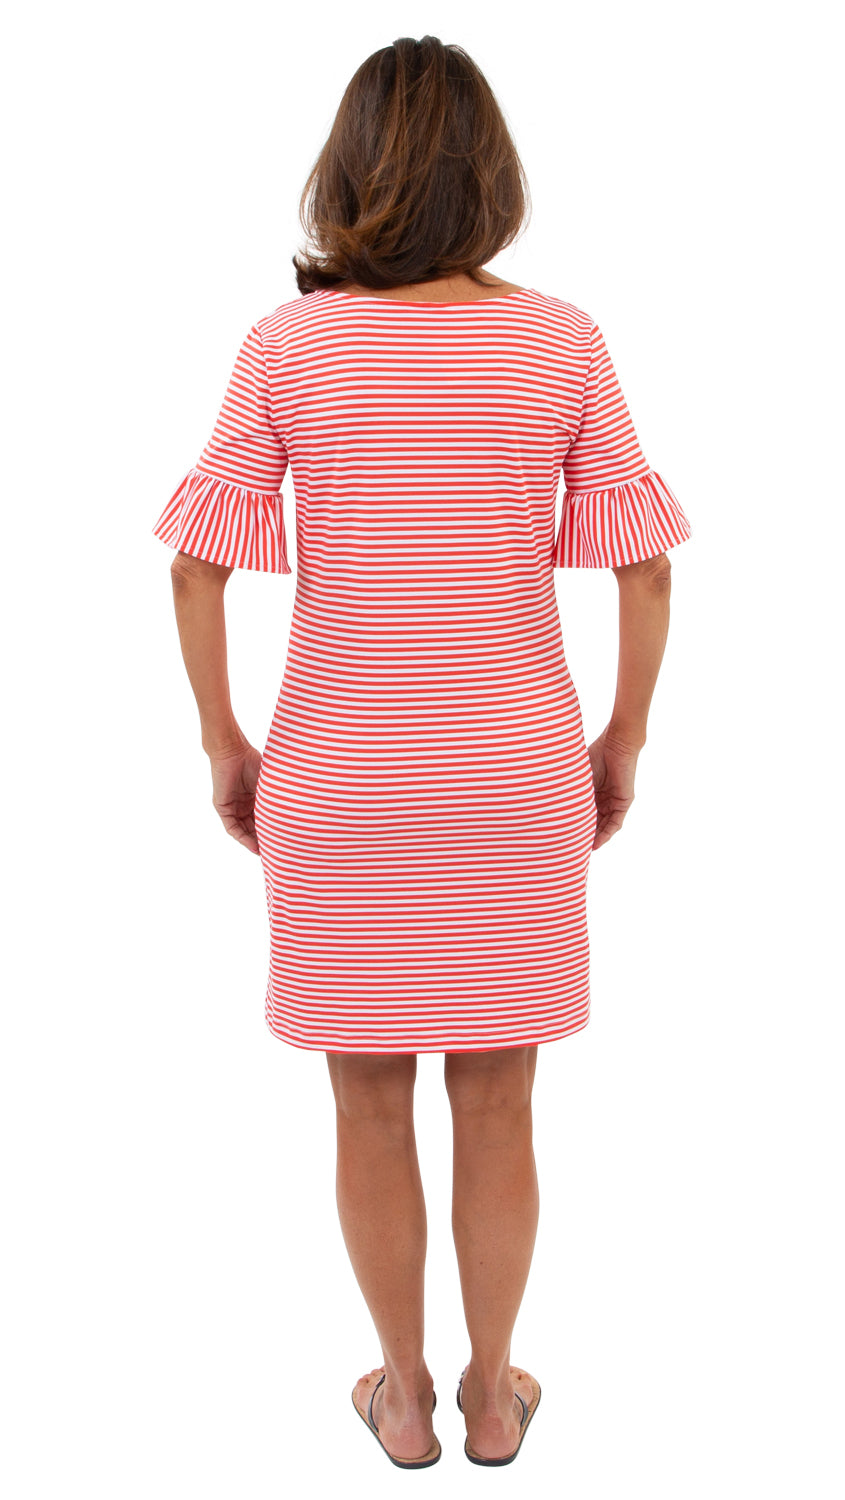 Dockside Dress - Red/White Stripe